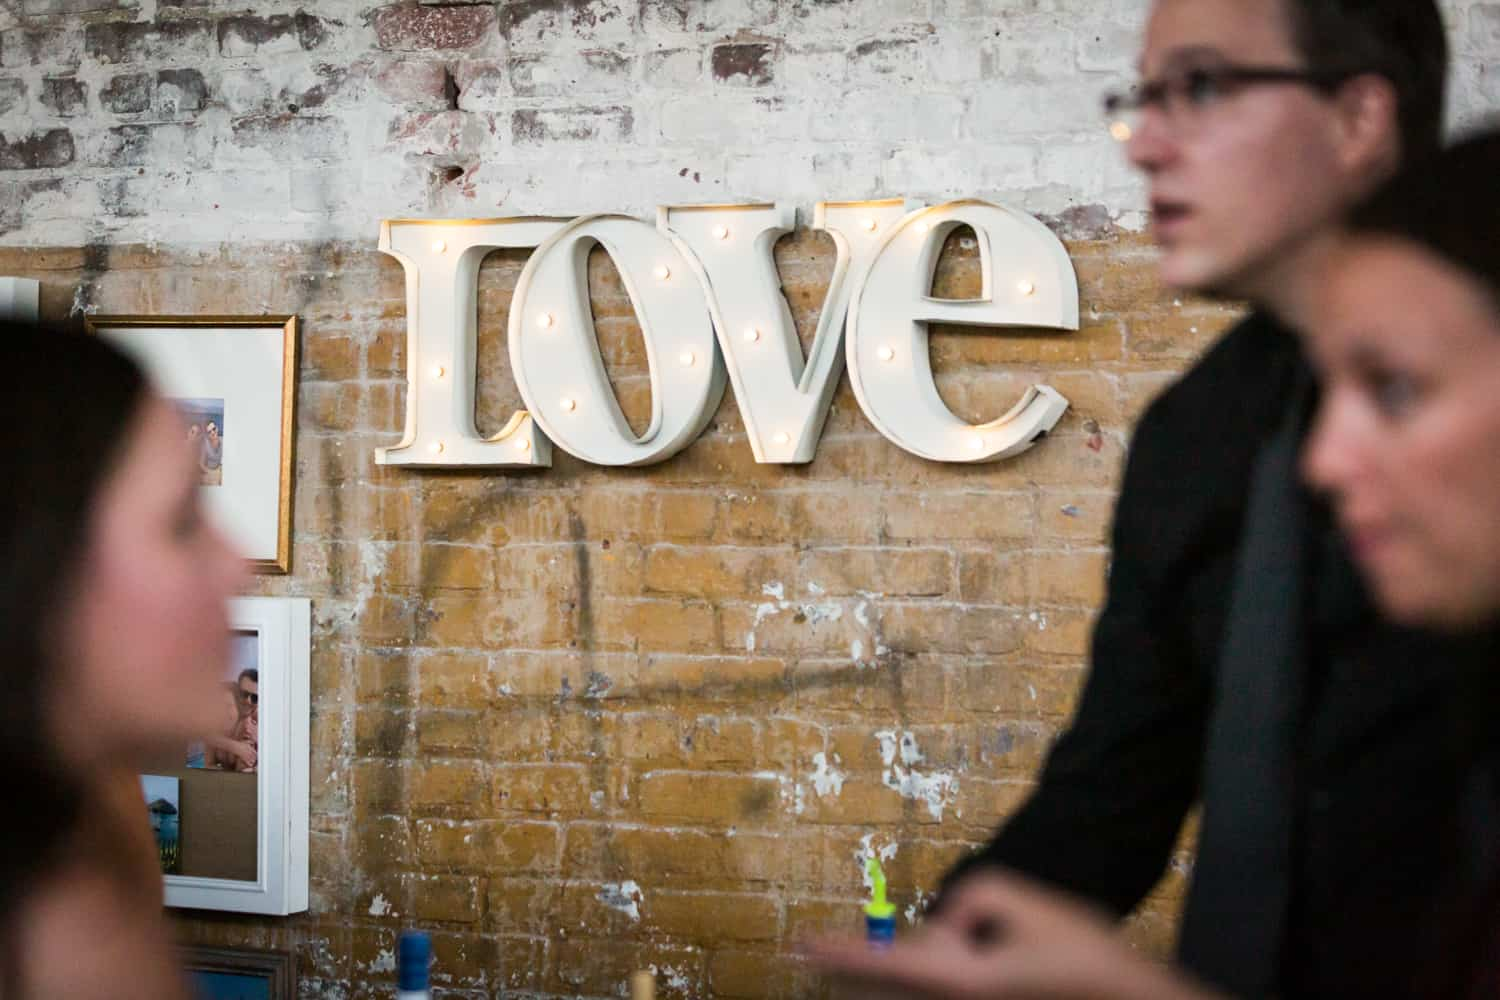 'Love' sign on brick wall with lights